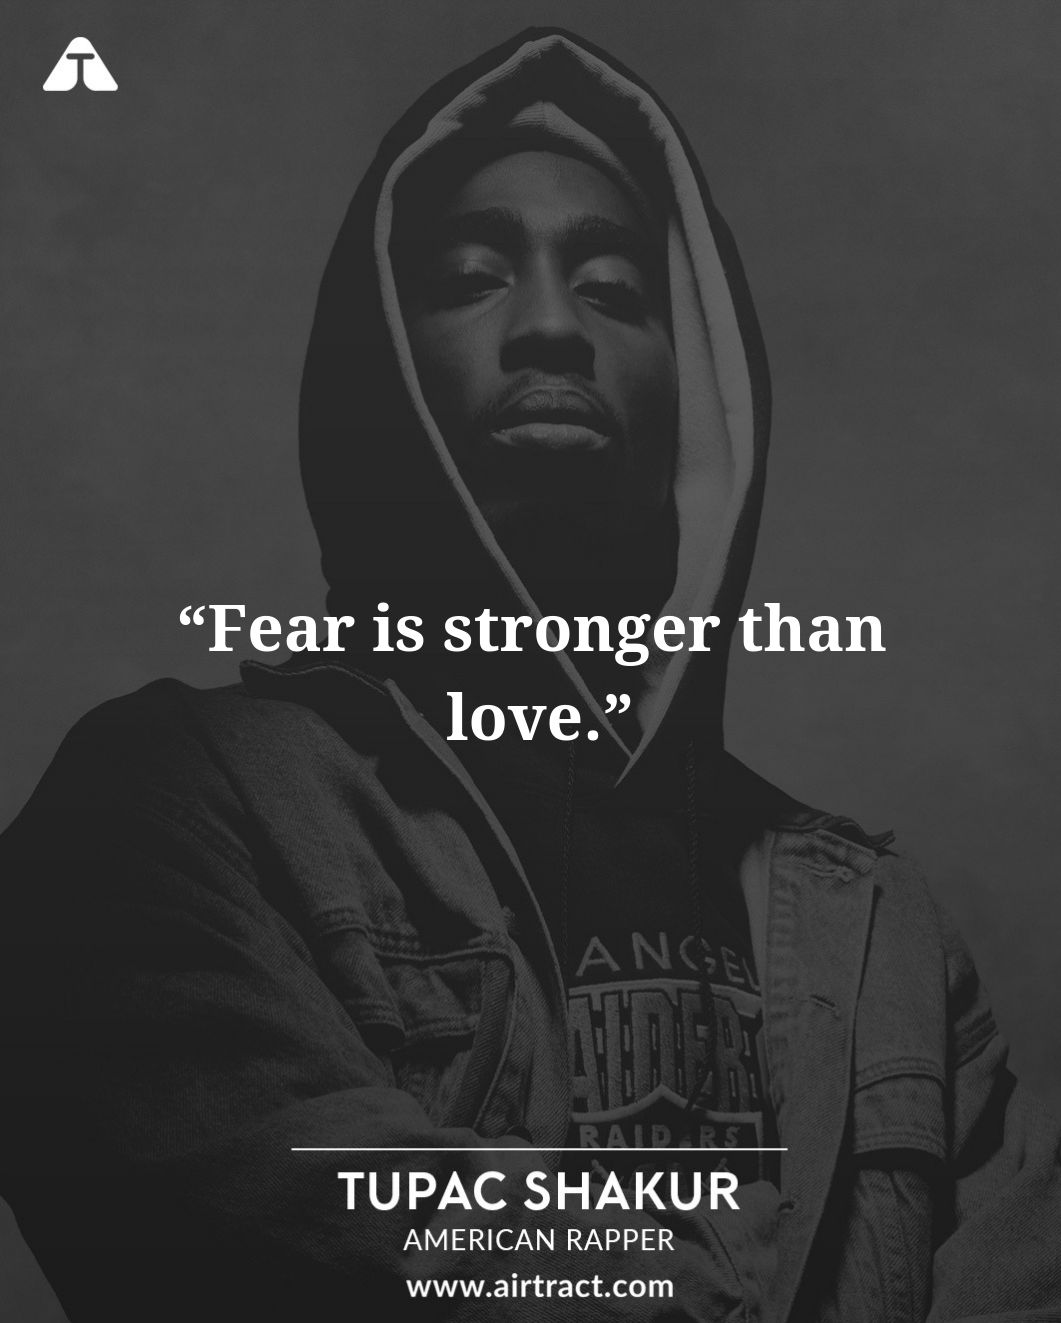 20 Tupac Shakur Quotes about Life, Love, Friends   AirTract